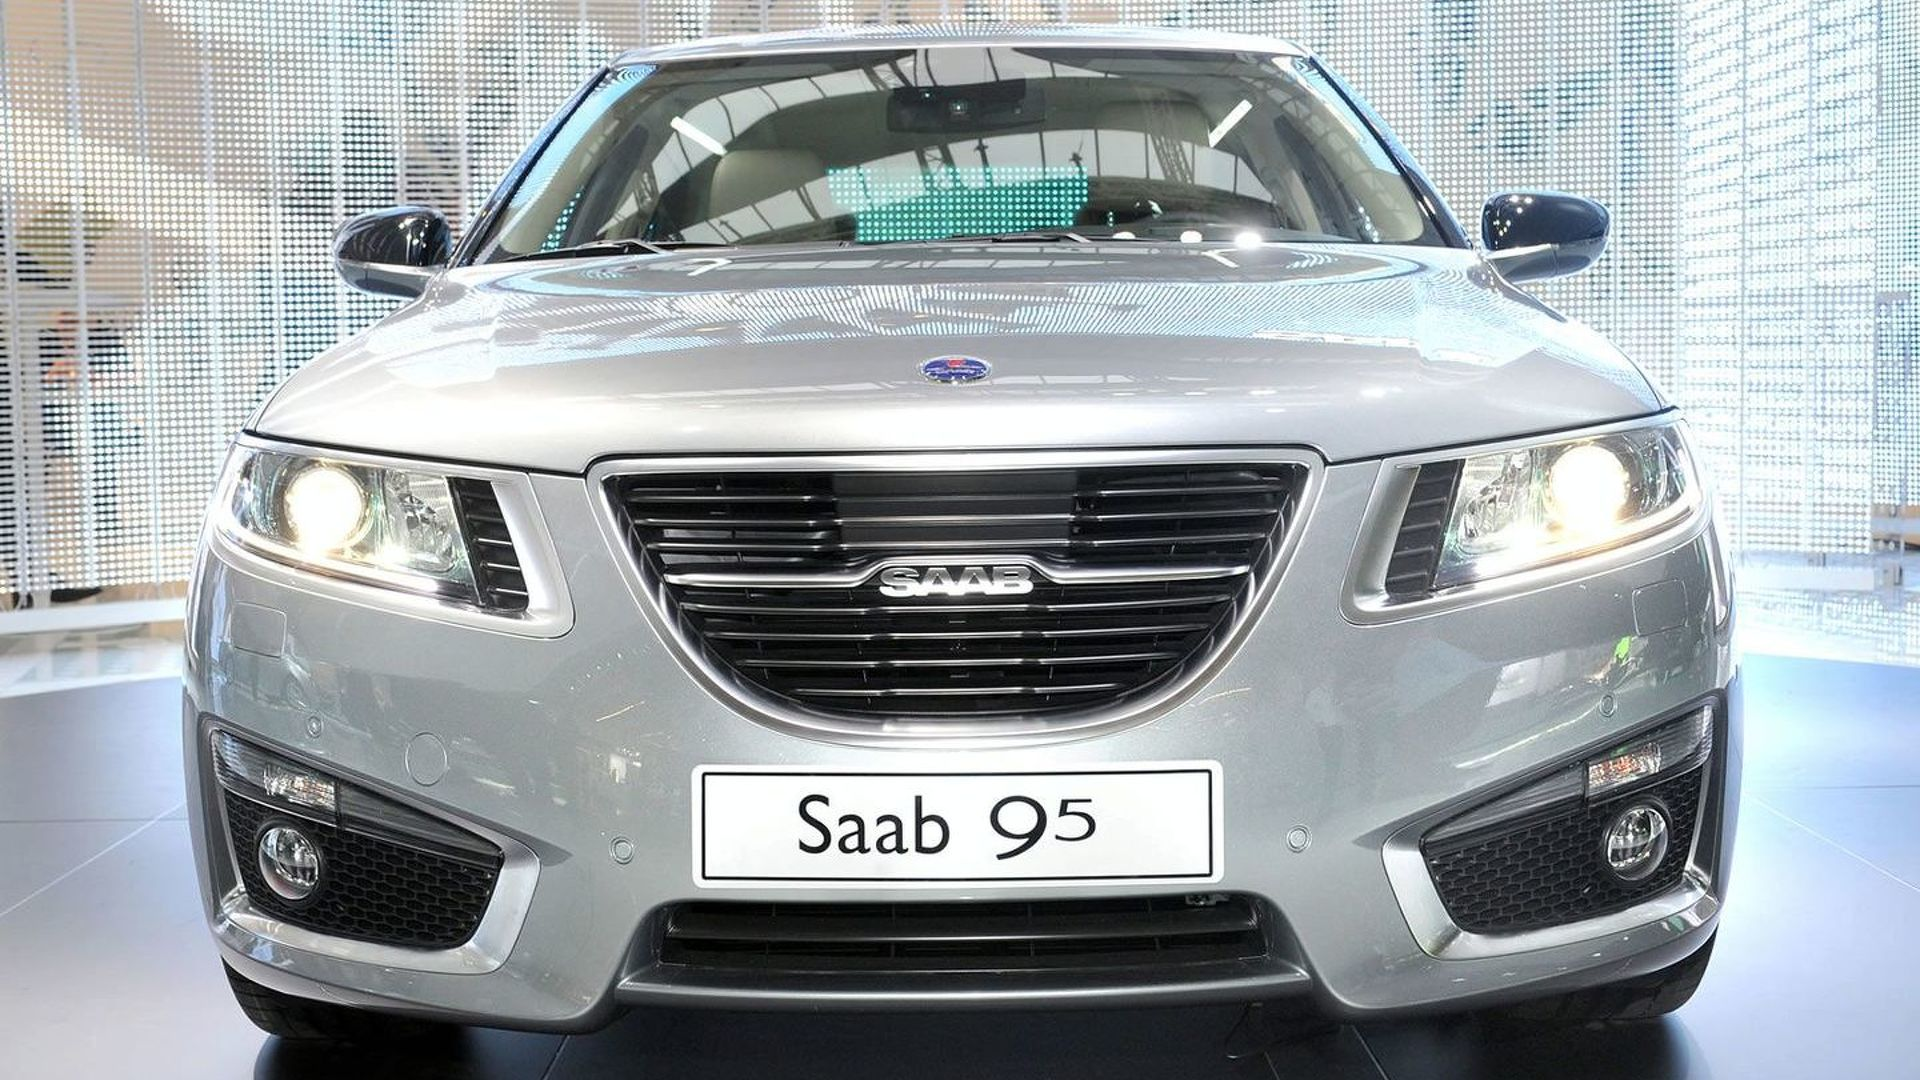 Possible Saab Sale to Spyker This Week - report